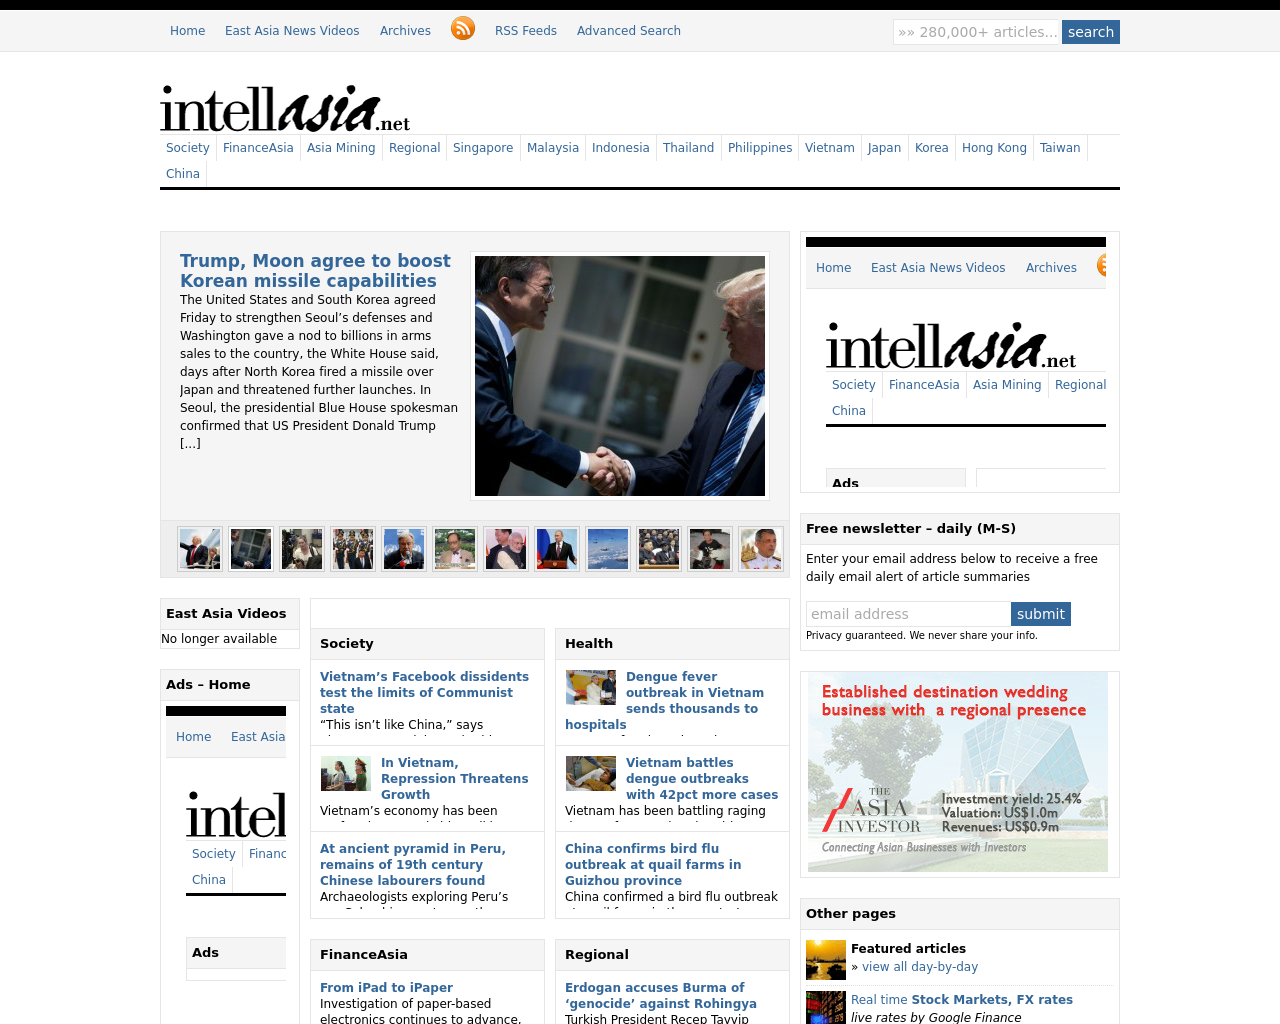 Intellasia-East-Asia-News-Advertising-Reviews-Pricing